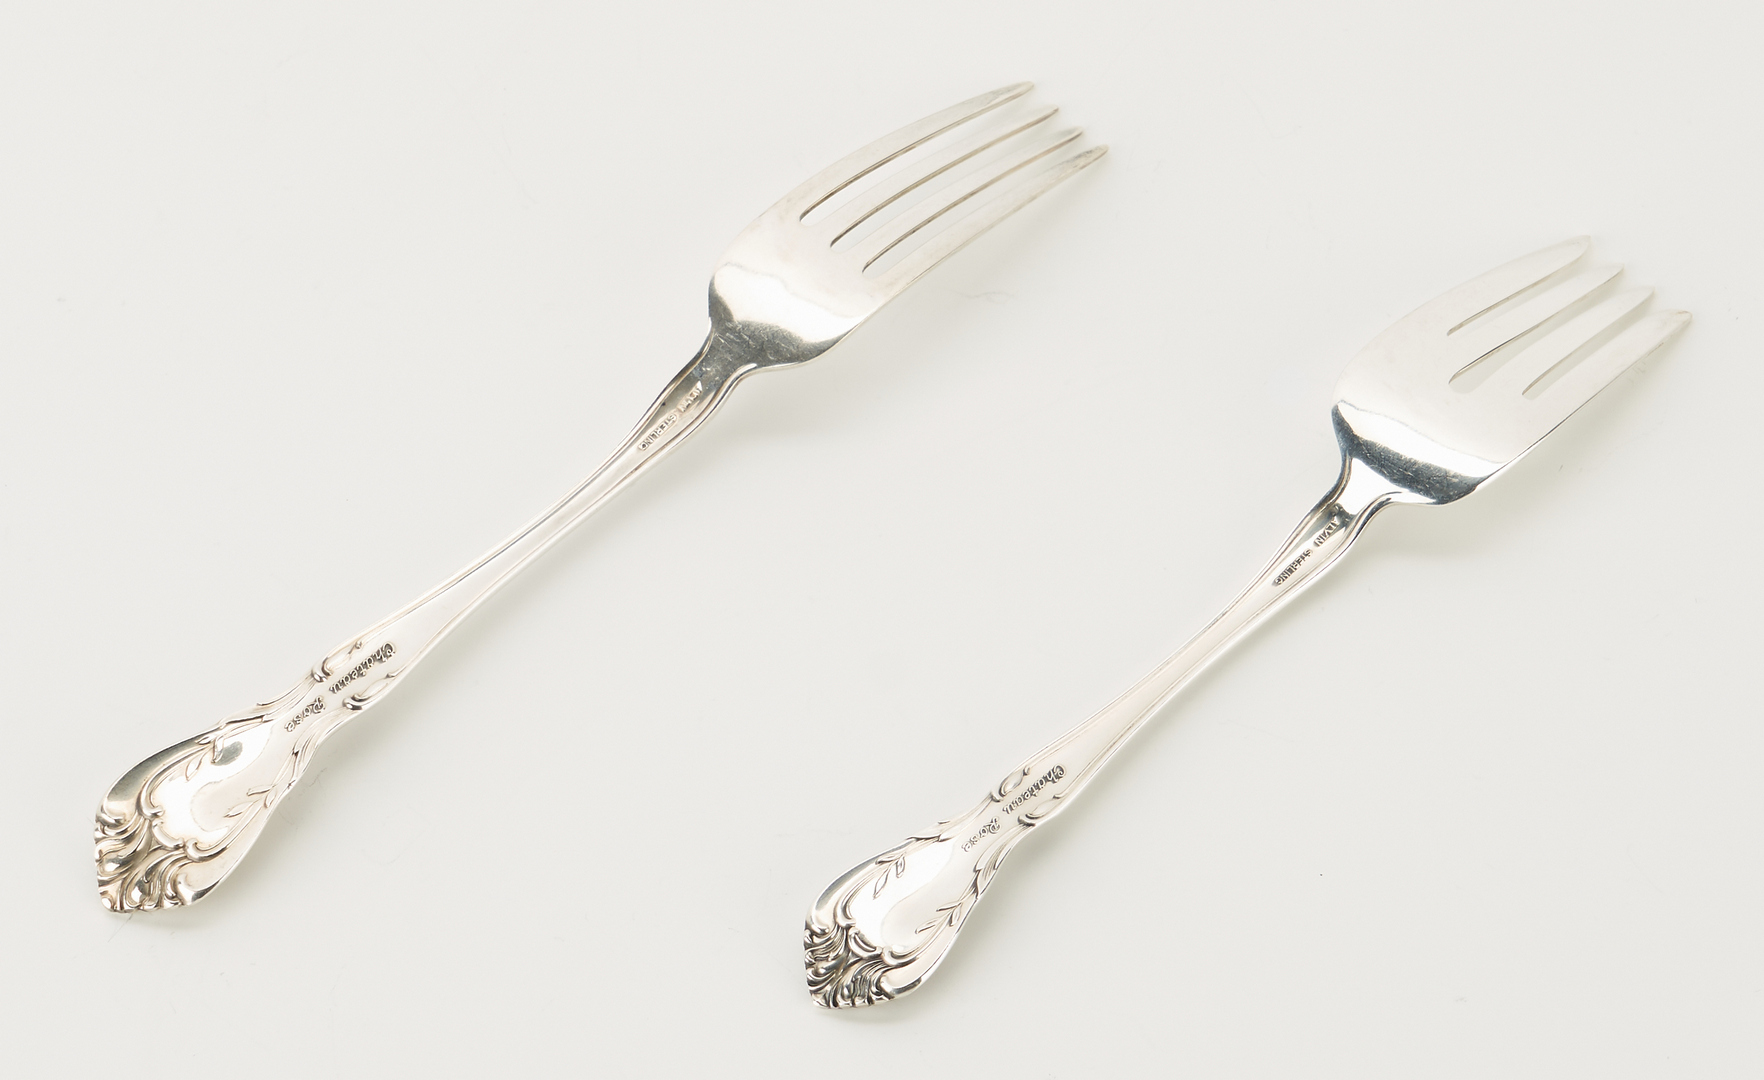 Lot 286: Alvin Sterling Flatware Chateau Rose, 58 pcs.